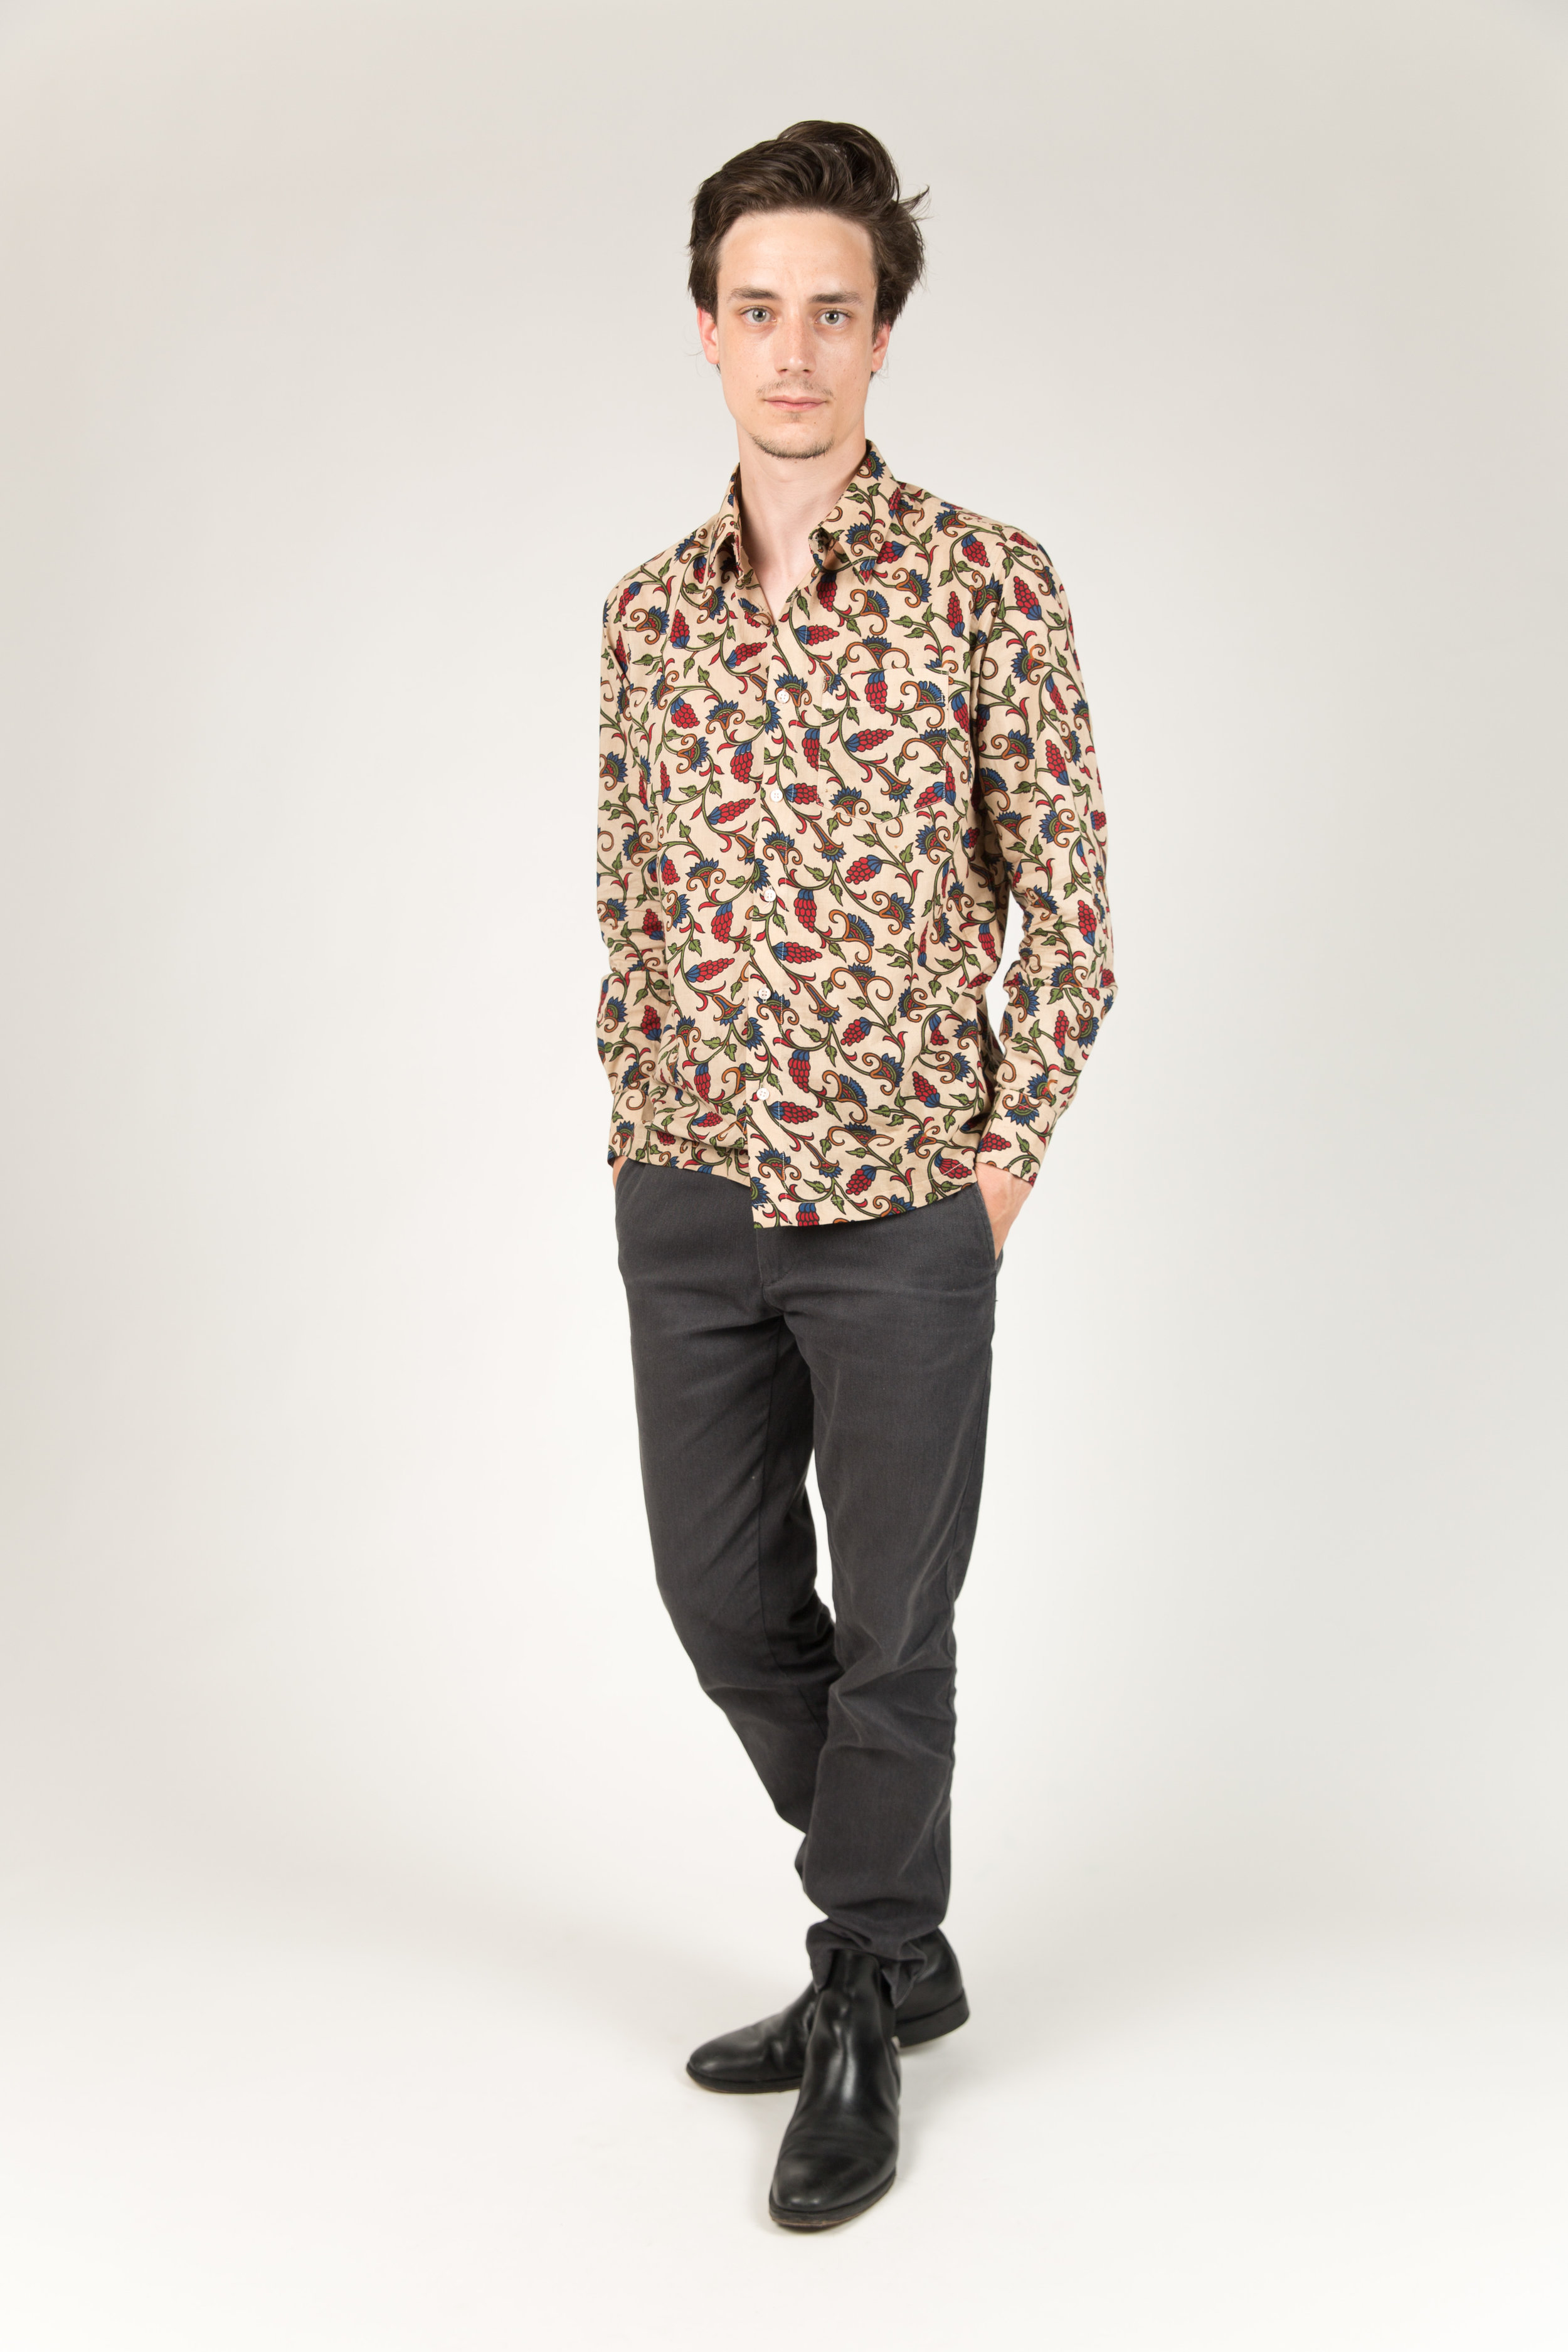 ALSAR_BLACK_AND_WHITE_UNISEX_SHIRT_CHARZA